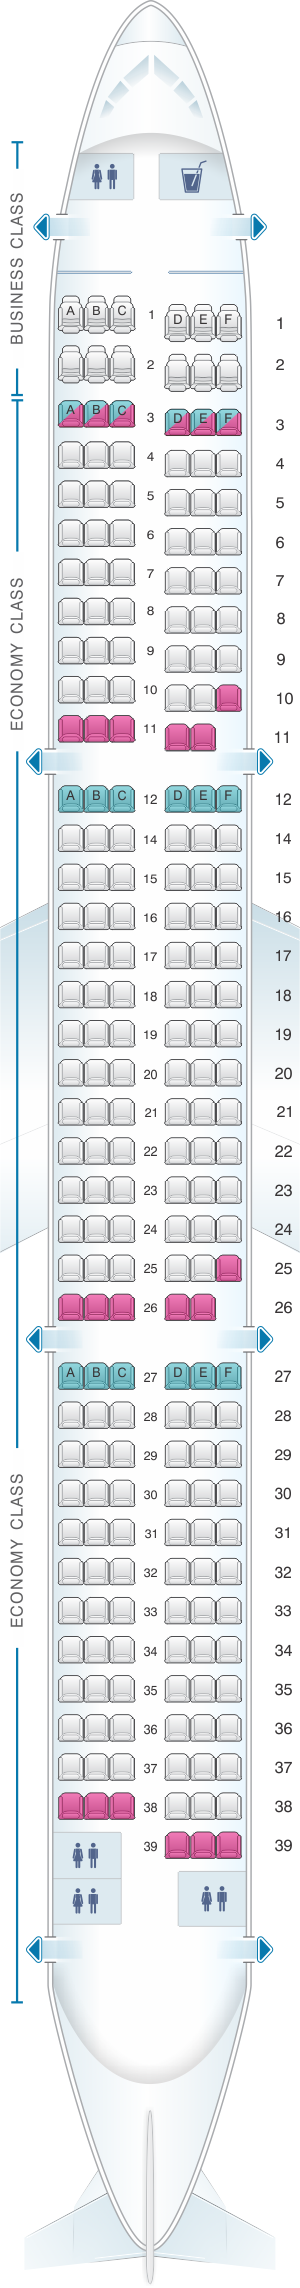 Seat Map Airbus A321.